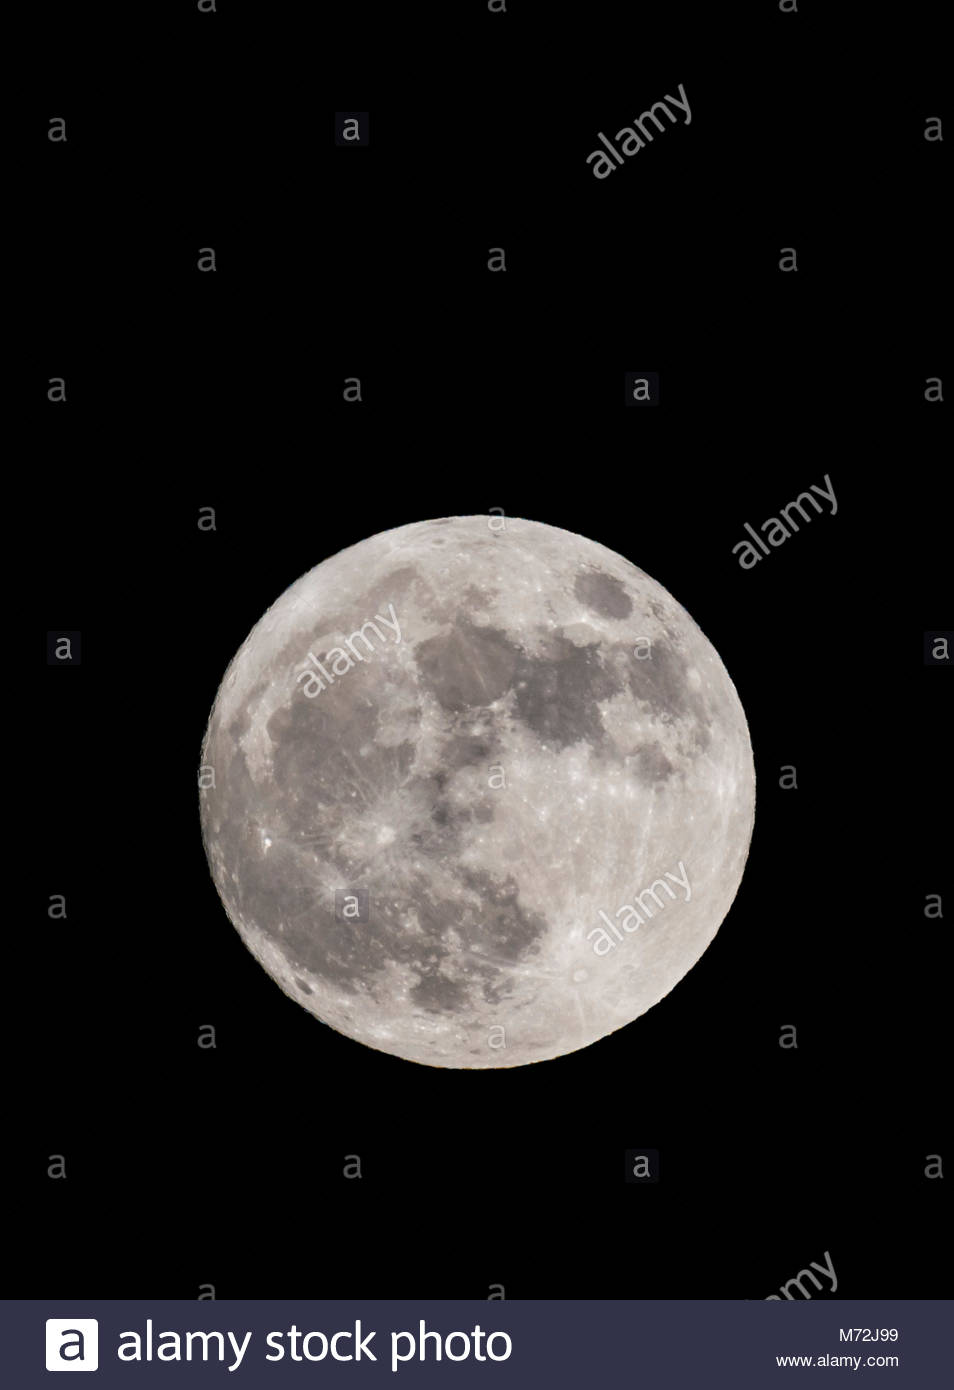 supermoon-on-1st-january-2018-taken-from-the-south-of-england-uk-full-M72J99.jpg